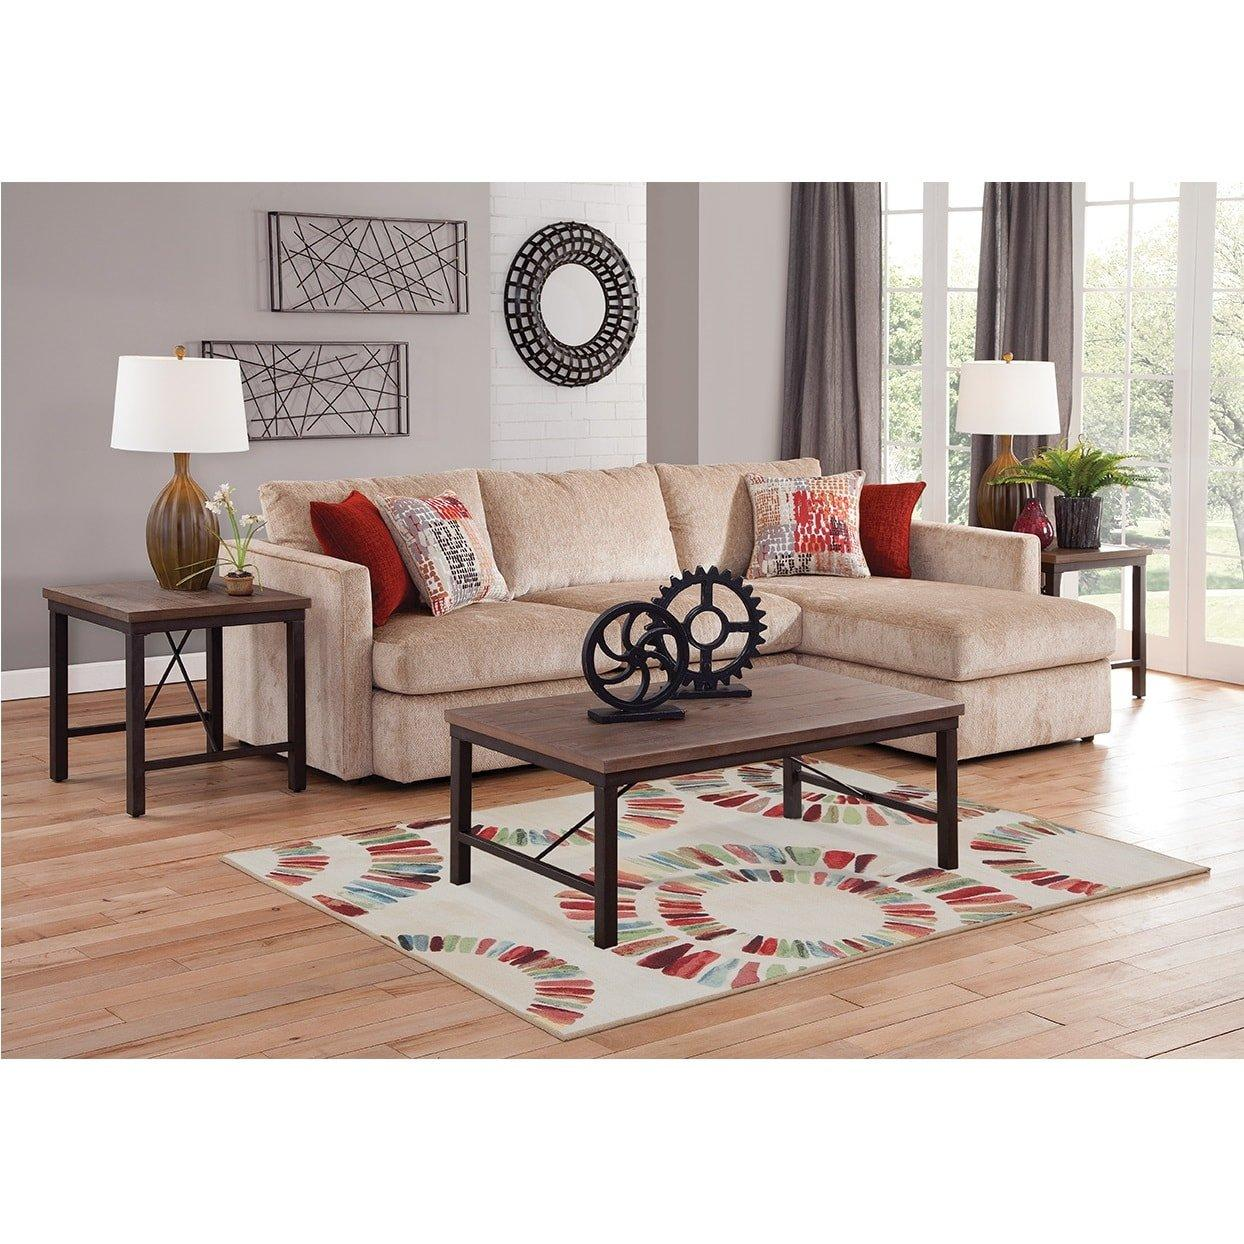 2 piece cassie chaise sofa sectional living room collection